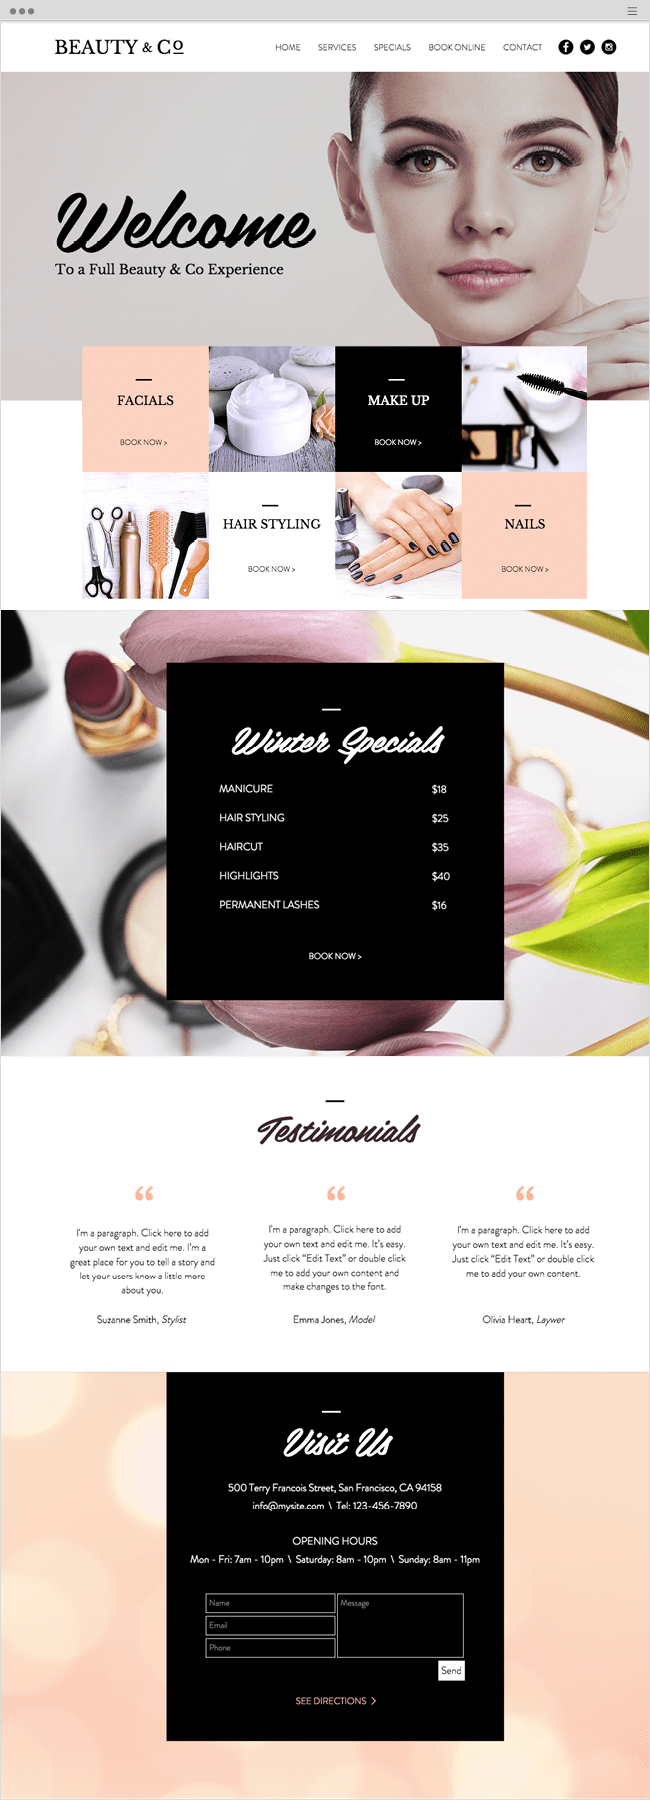 Beauty Salon Wix Website Template